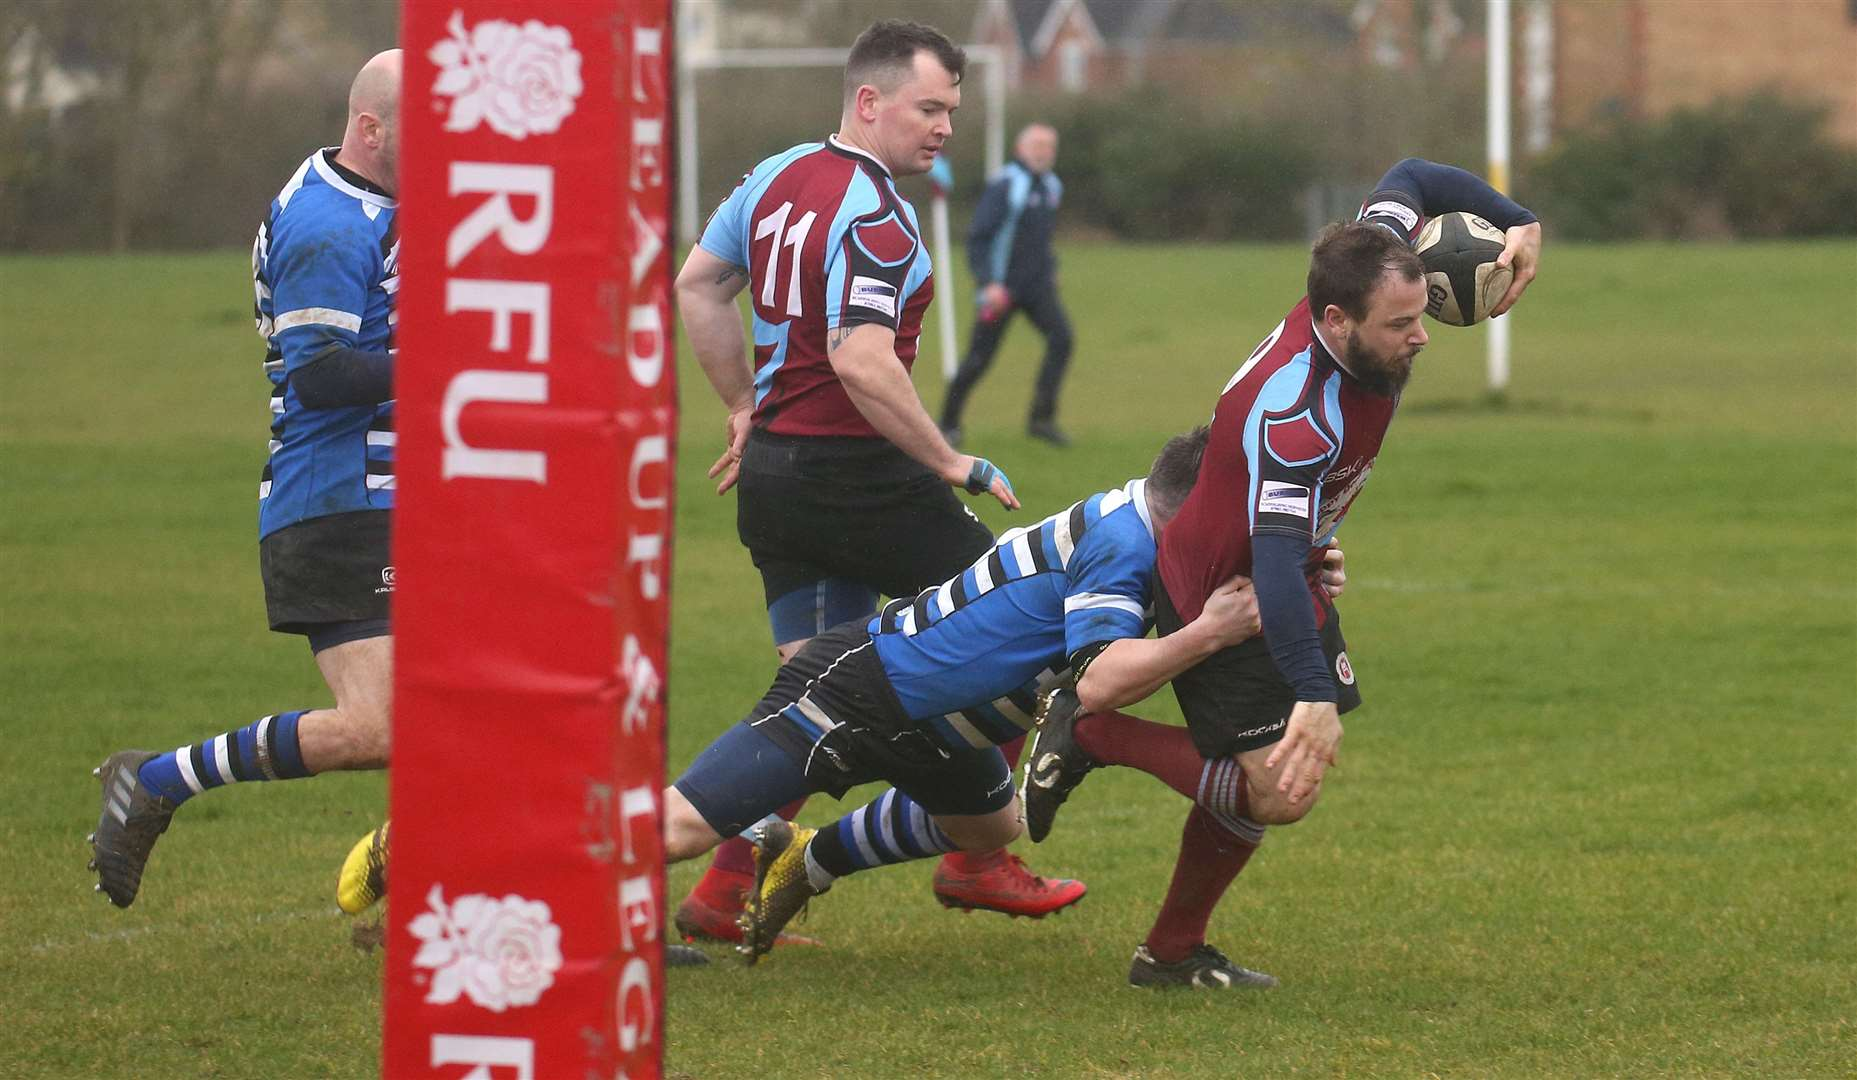 Haverhill v Sawston - No9 goes over for a try.(No team sheet available - I've put in shirt numbers so you can get names from the club).Pic - Richard Marsham/RMG Photography. (29301909)